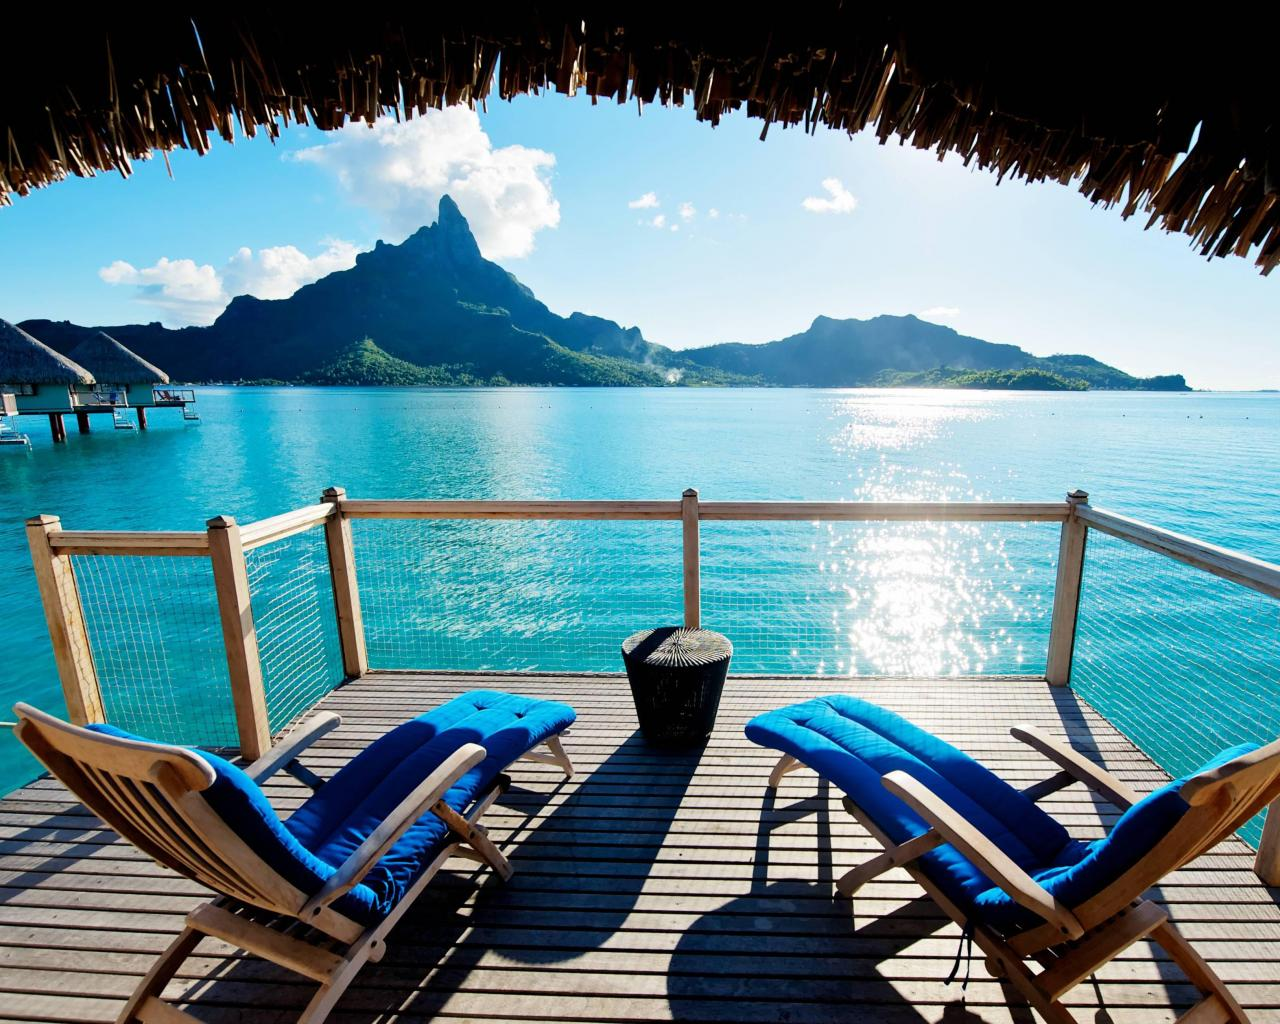 Bora bora view hd   108956   High Quality and Resolution Wallpapers 1280x1024